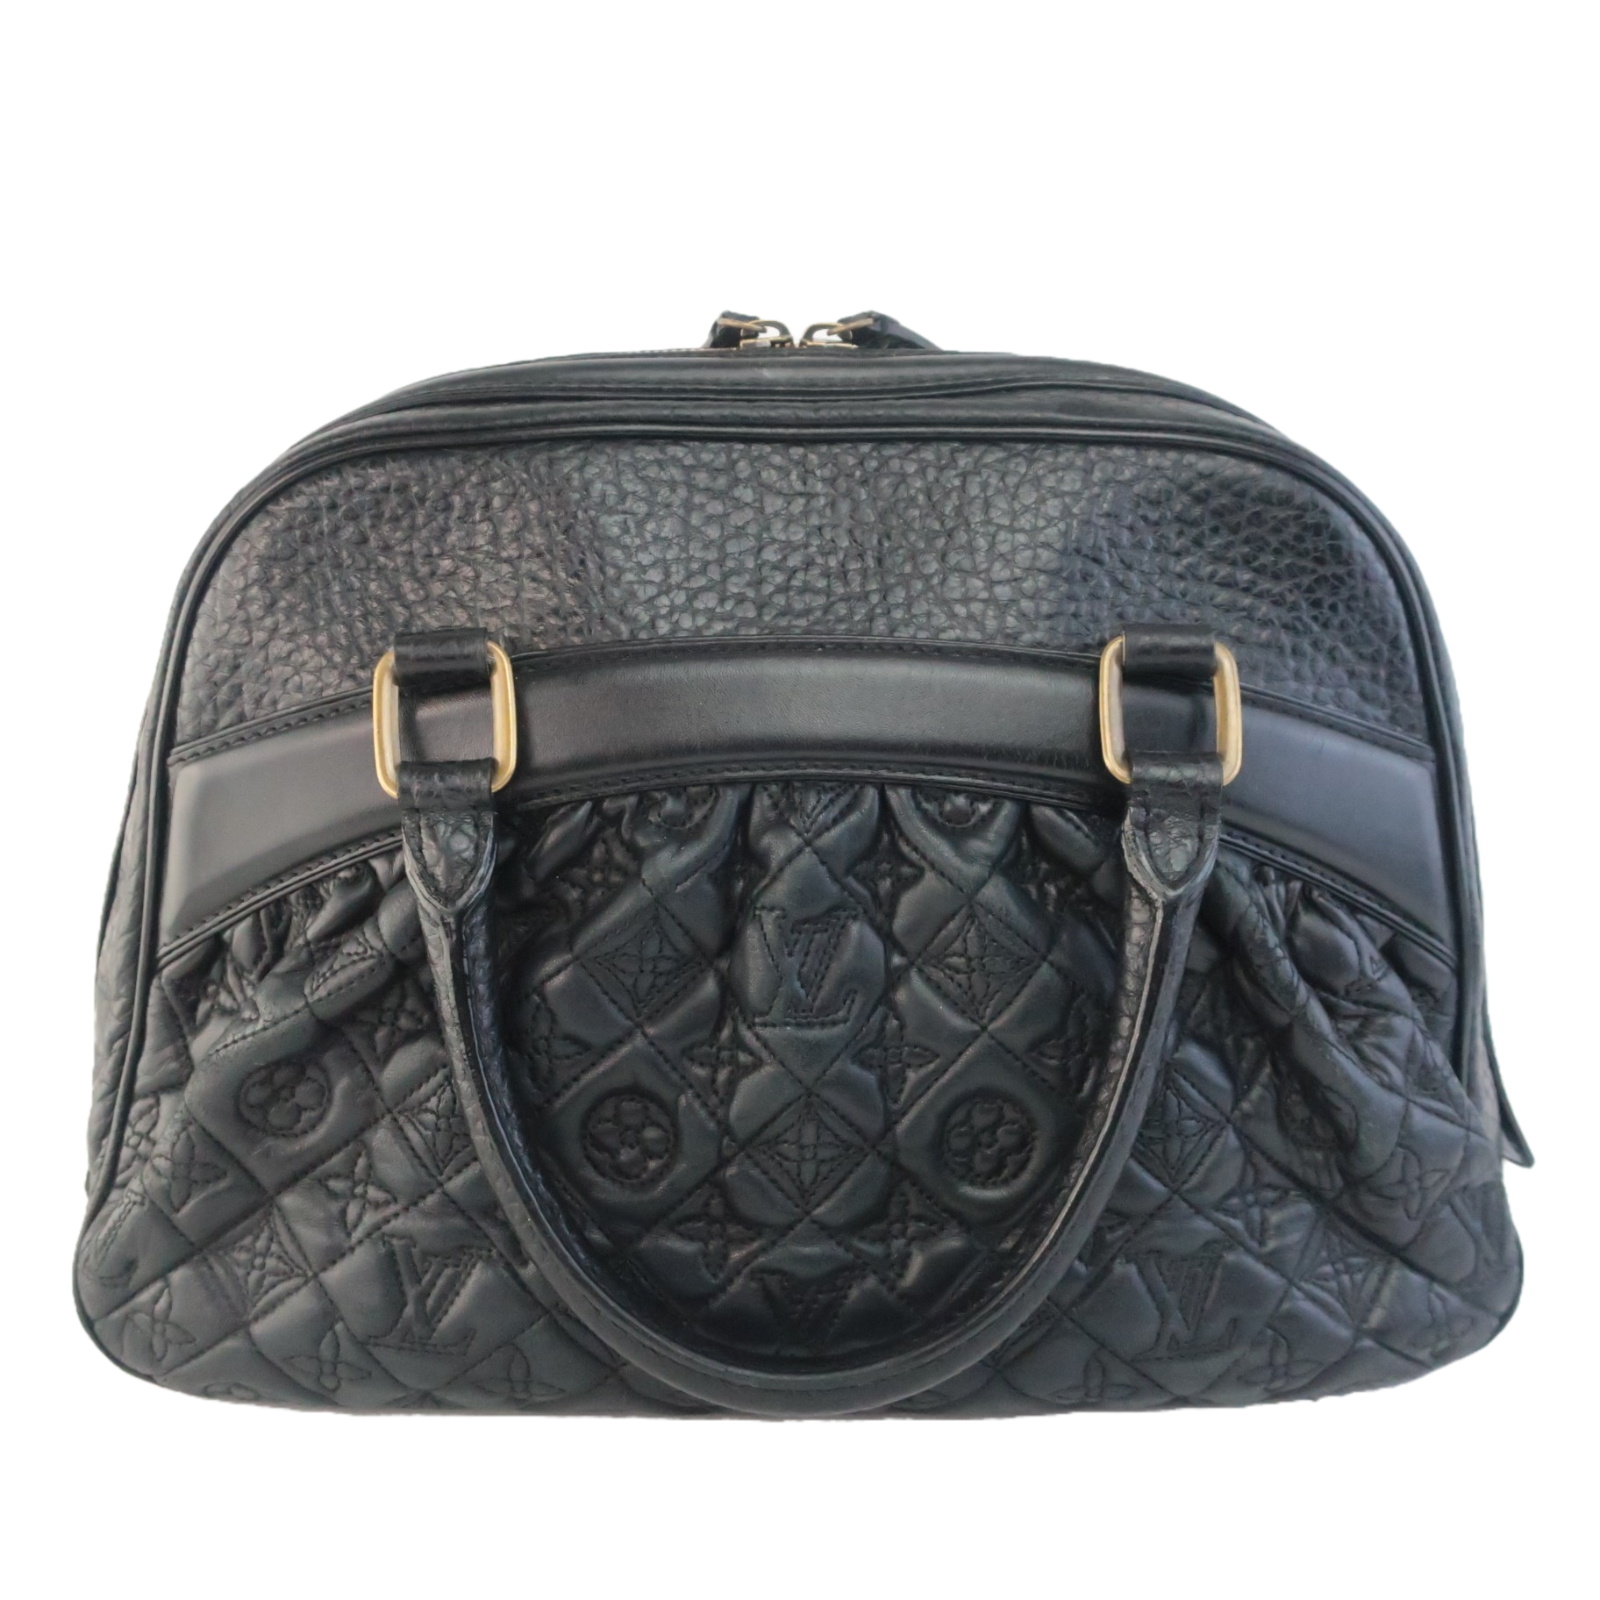 Primary image for Louis Vuitton Black Limited Edition Leather Mizi Vienna Bag